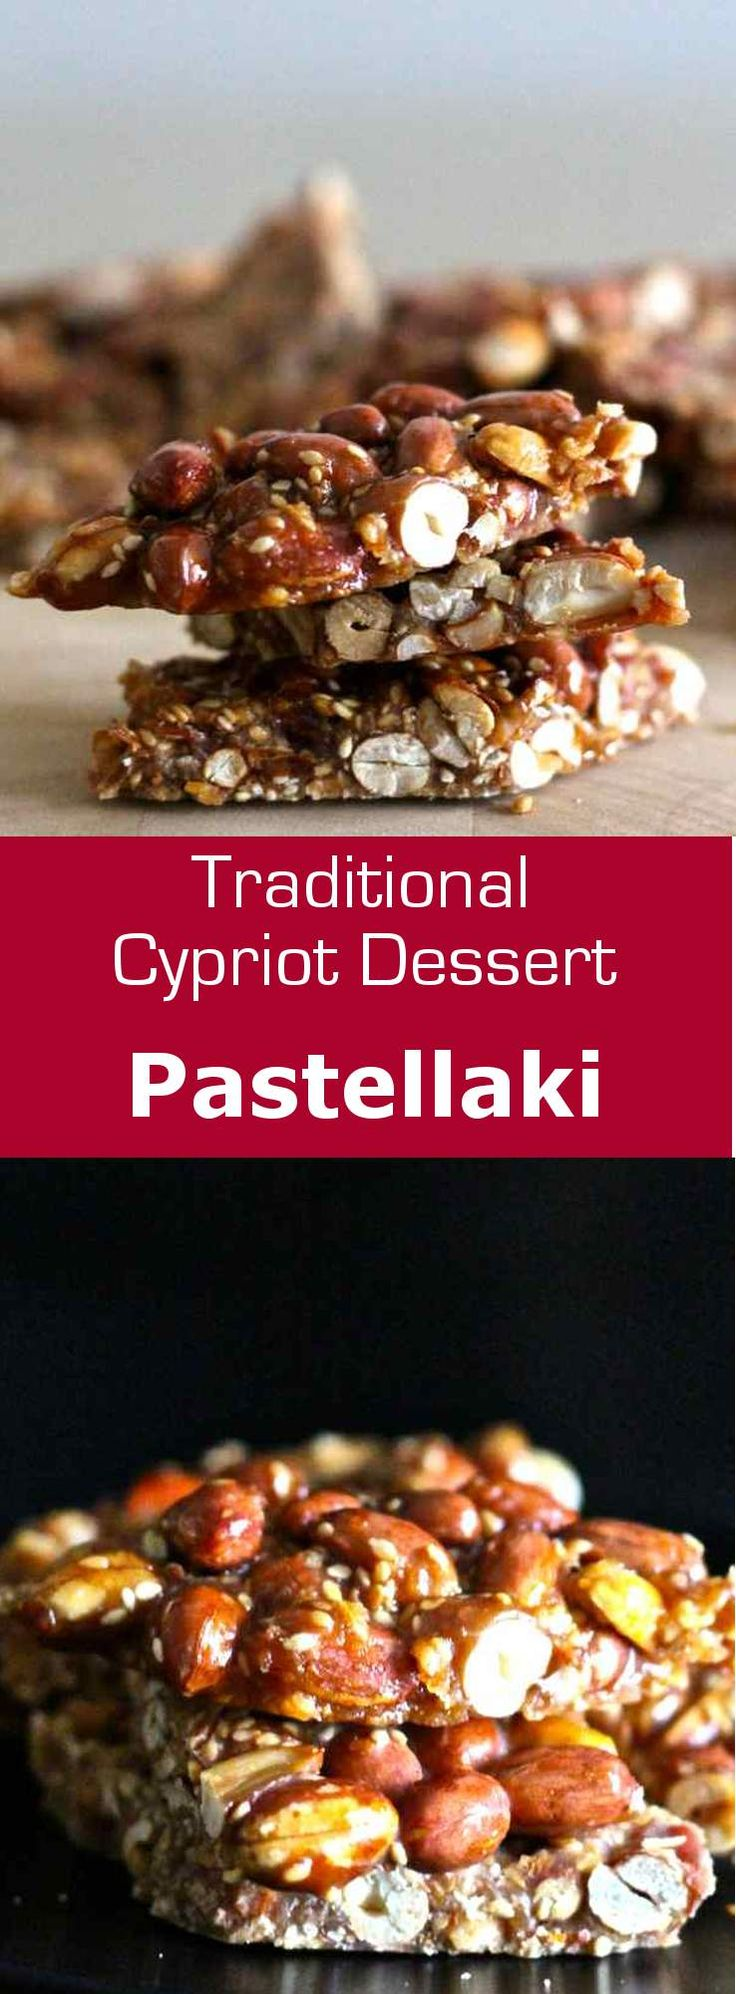 Pastellaki is a traditional sesame seed and peanut candy from Cyprus. #dessert #snack #candy #vegetarian #vegan #glutenfree #cyprus #196flavors